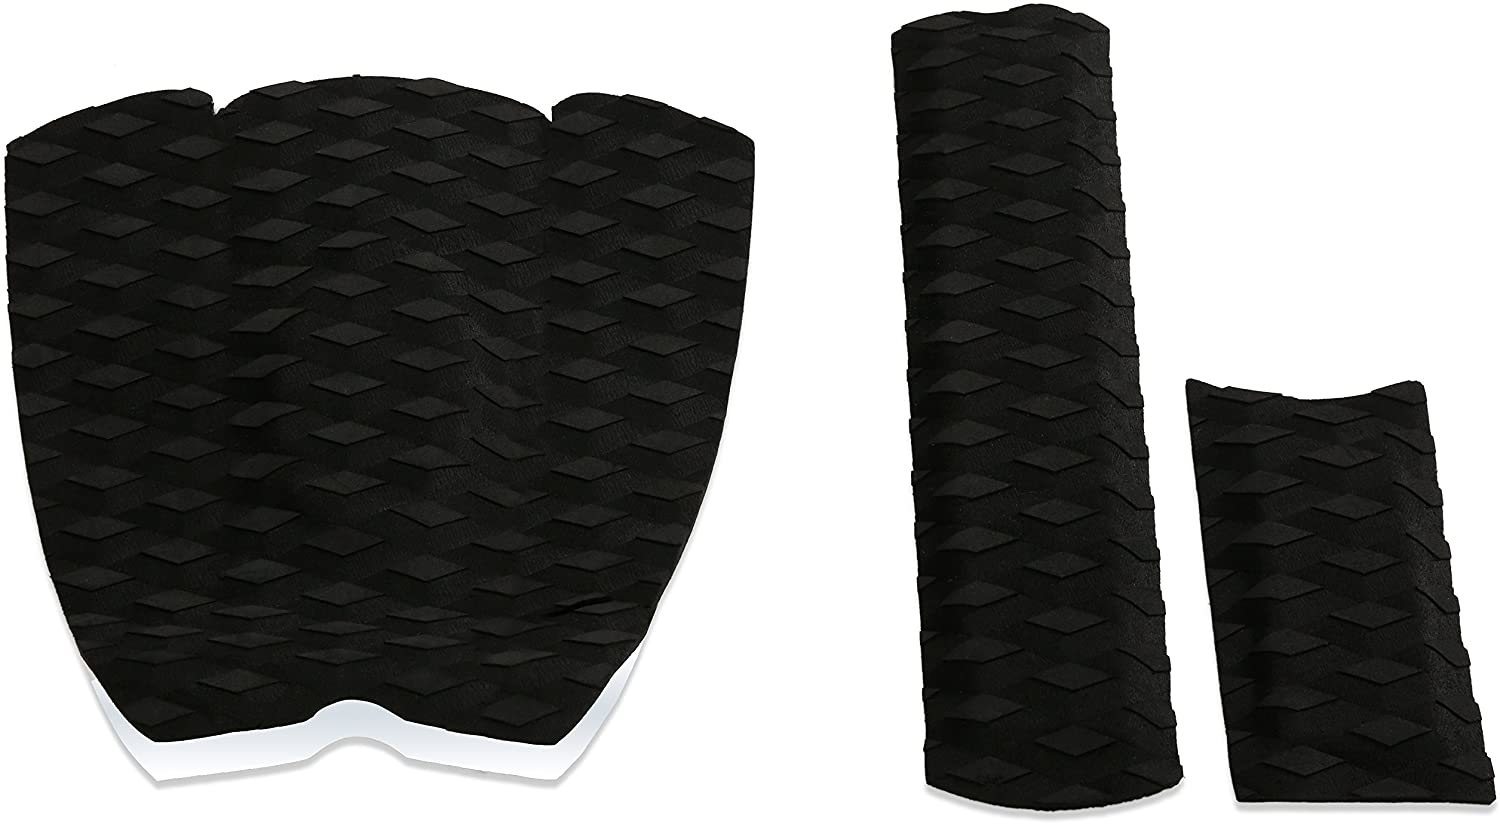 for Ultimate Grip on Skim Boards 3 Piece Stomp Track Pad for Skimboarding with Stickiest 3M Adhesive Punt Surf Skimboard Traction Pad /& Arch Bar